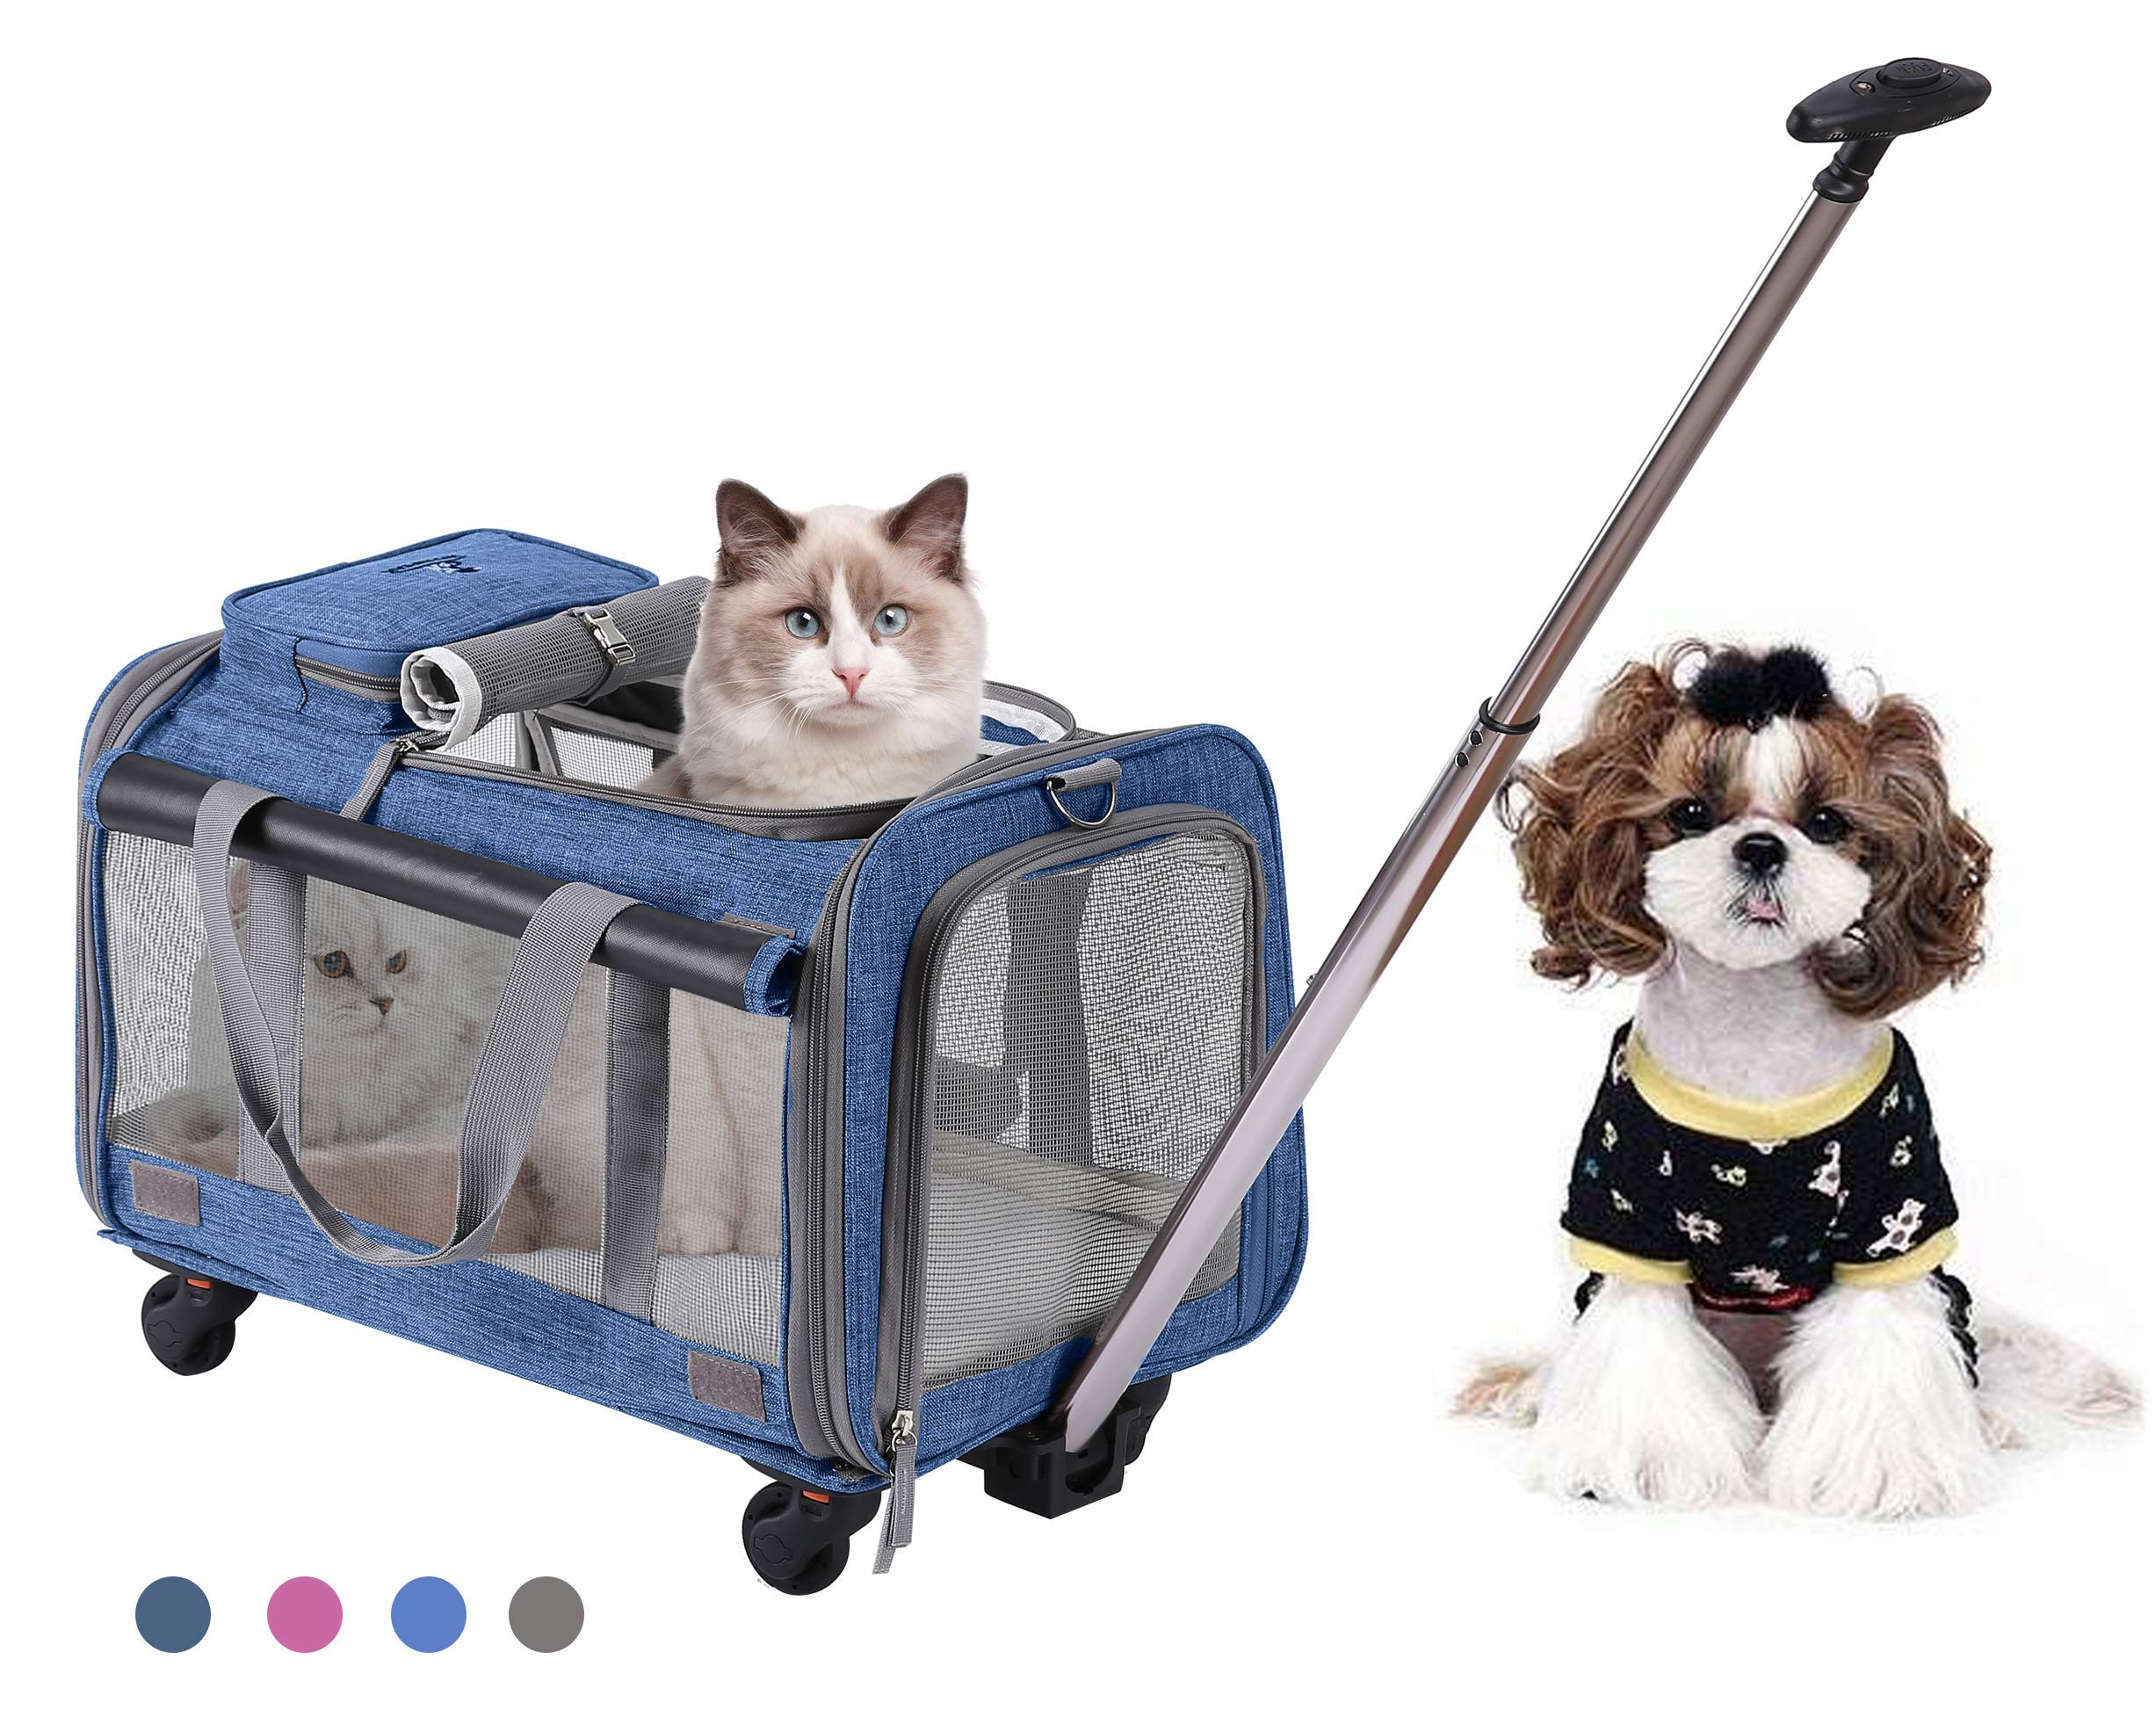 MOVEPEAK PET Carrier with Wheel, Luxury Pet Bag Strollers with Comfortable Fleece Mat for Travel, Hiking,Camping, Designed for Cats, Dogs, Kittens, Puppies, 360° Swivel Mute Wheels